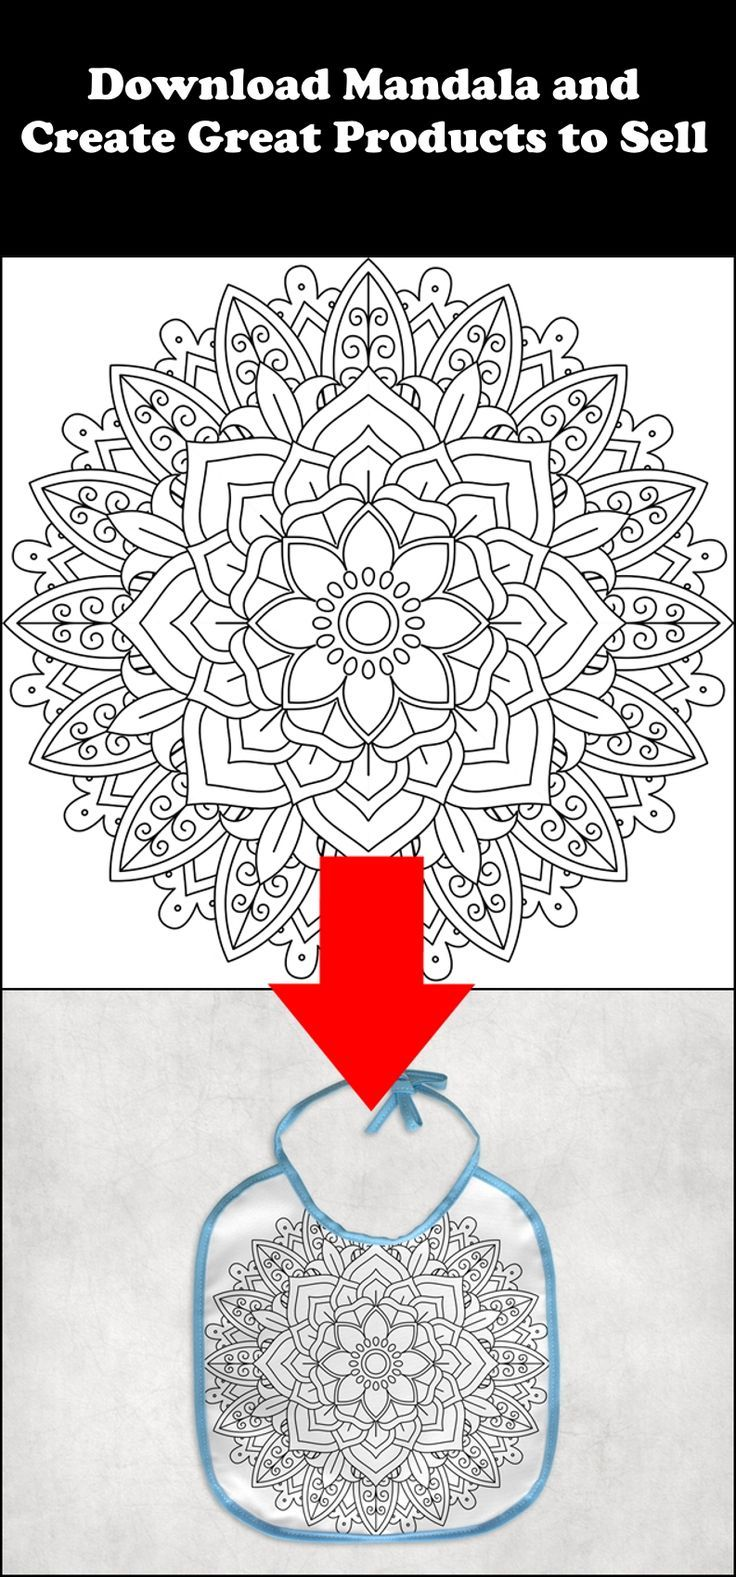 Create Your Own Product And Sell For Profit Create Product Profit Sell Mandala Art Mandala Coloring Pages Mandala